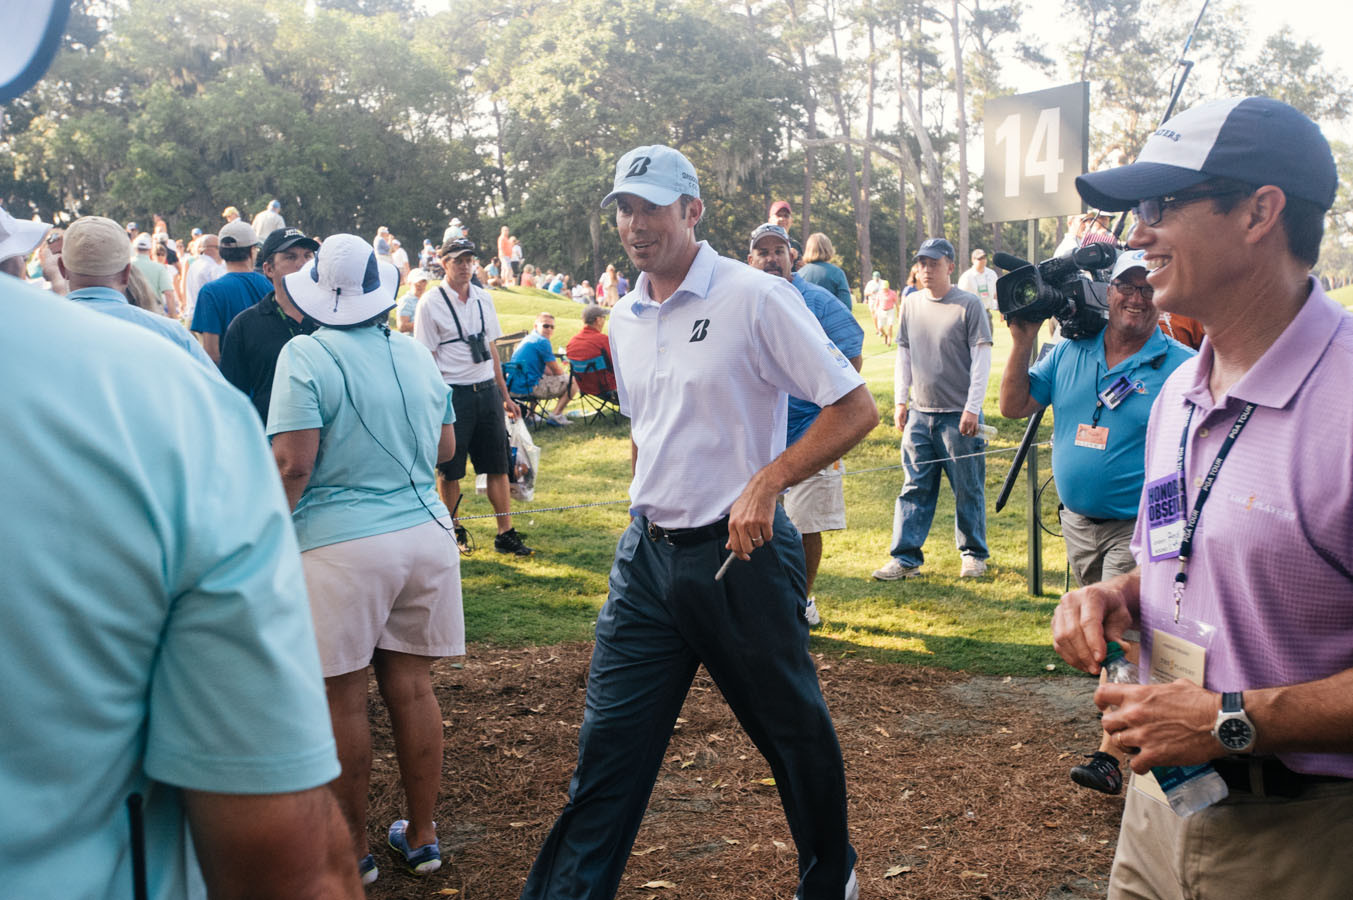 Matt Kuchar talks to volunteers as he walks towards the 15th tee.